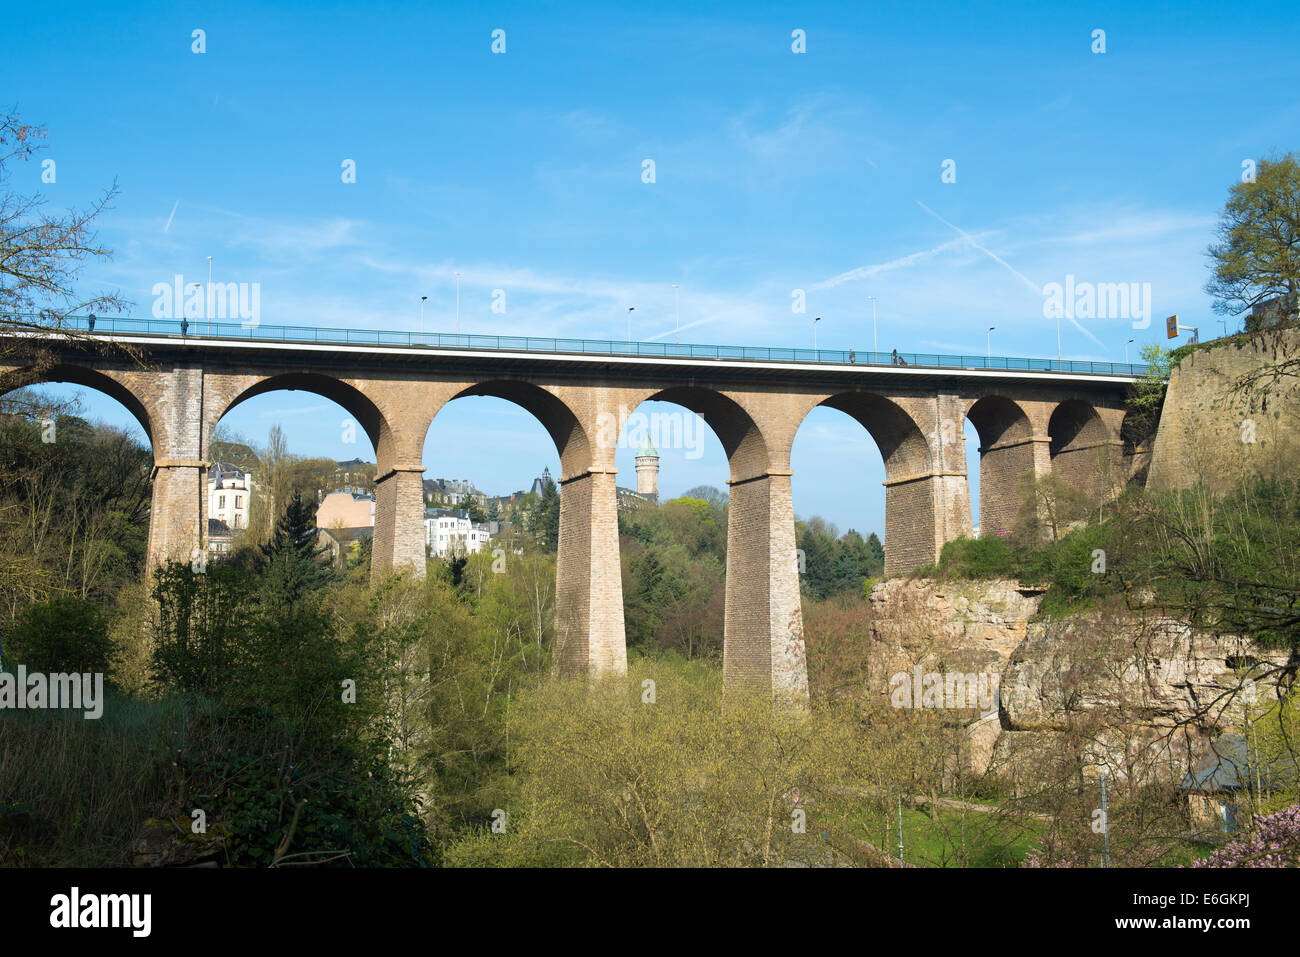 The Passerelle (or Luxembourg Viaduct) in Luxemburg. - Stock Image